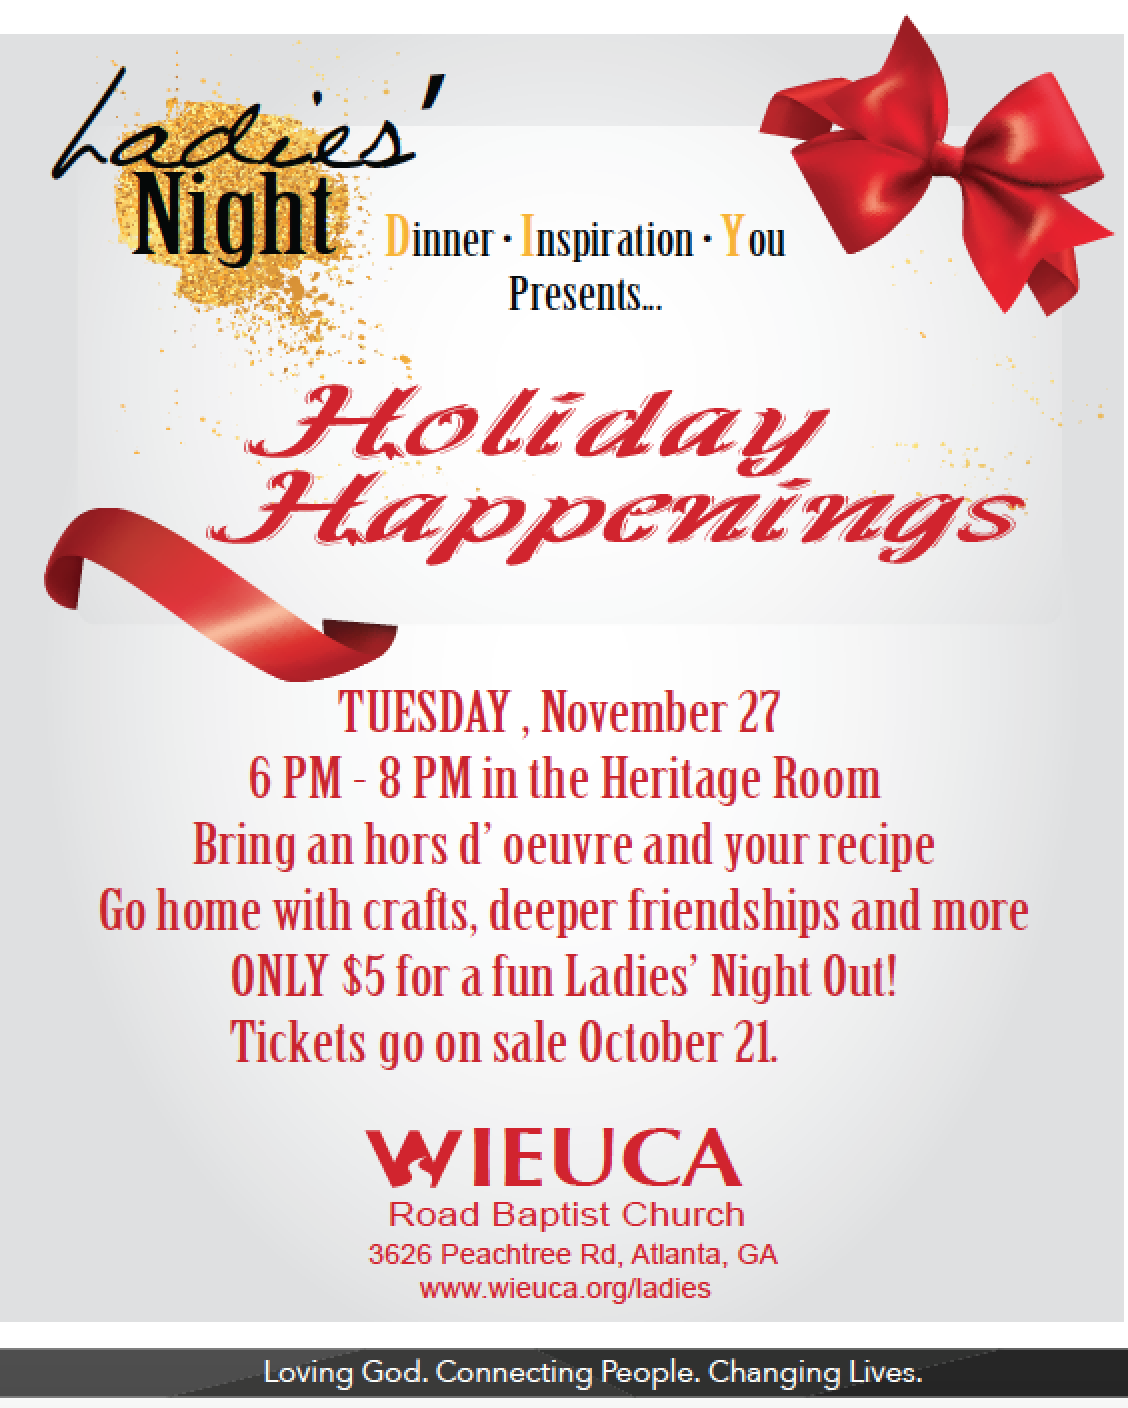 http://www.wieuca.org/uploads/HolidayHappenings.png